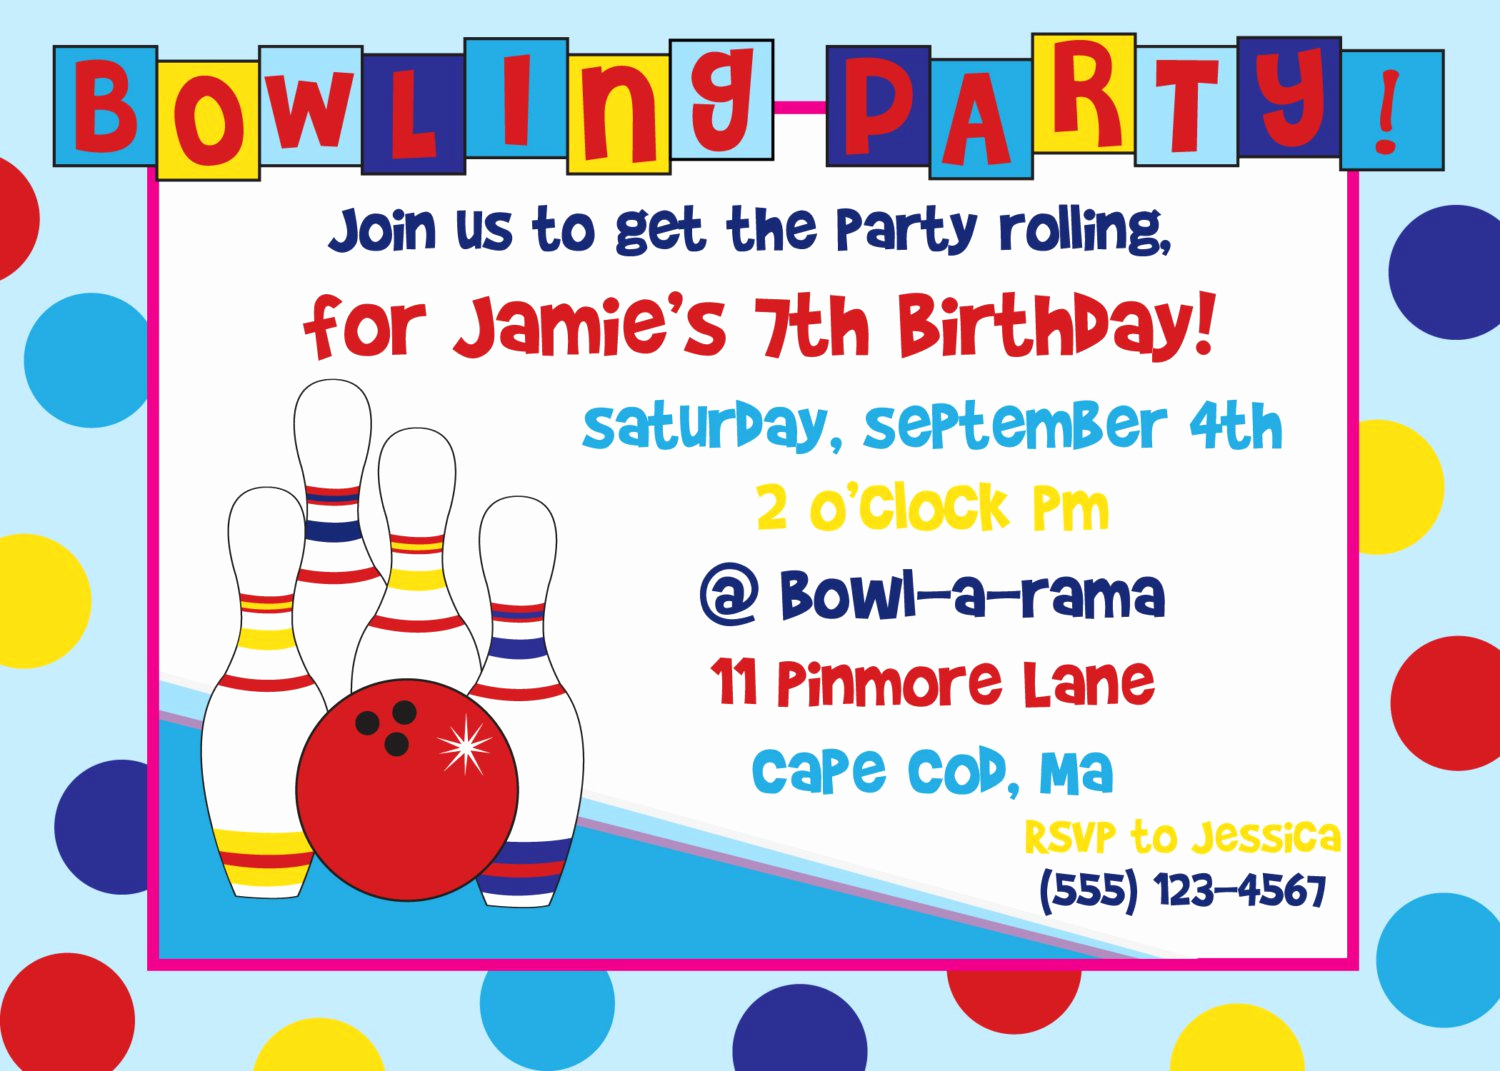 Free Birthday Party Invitation Templates Luxury Bowling Birthday Party Invitations Free Templates